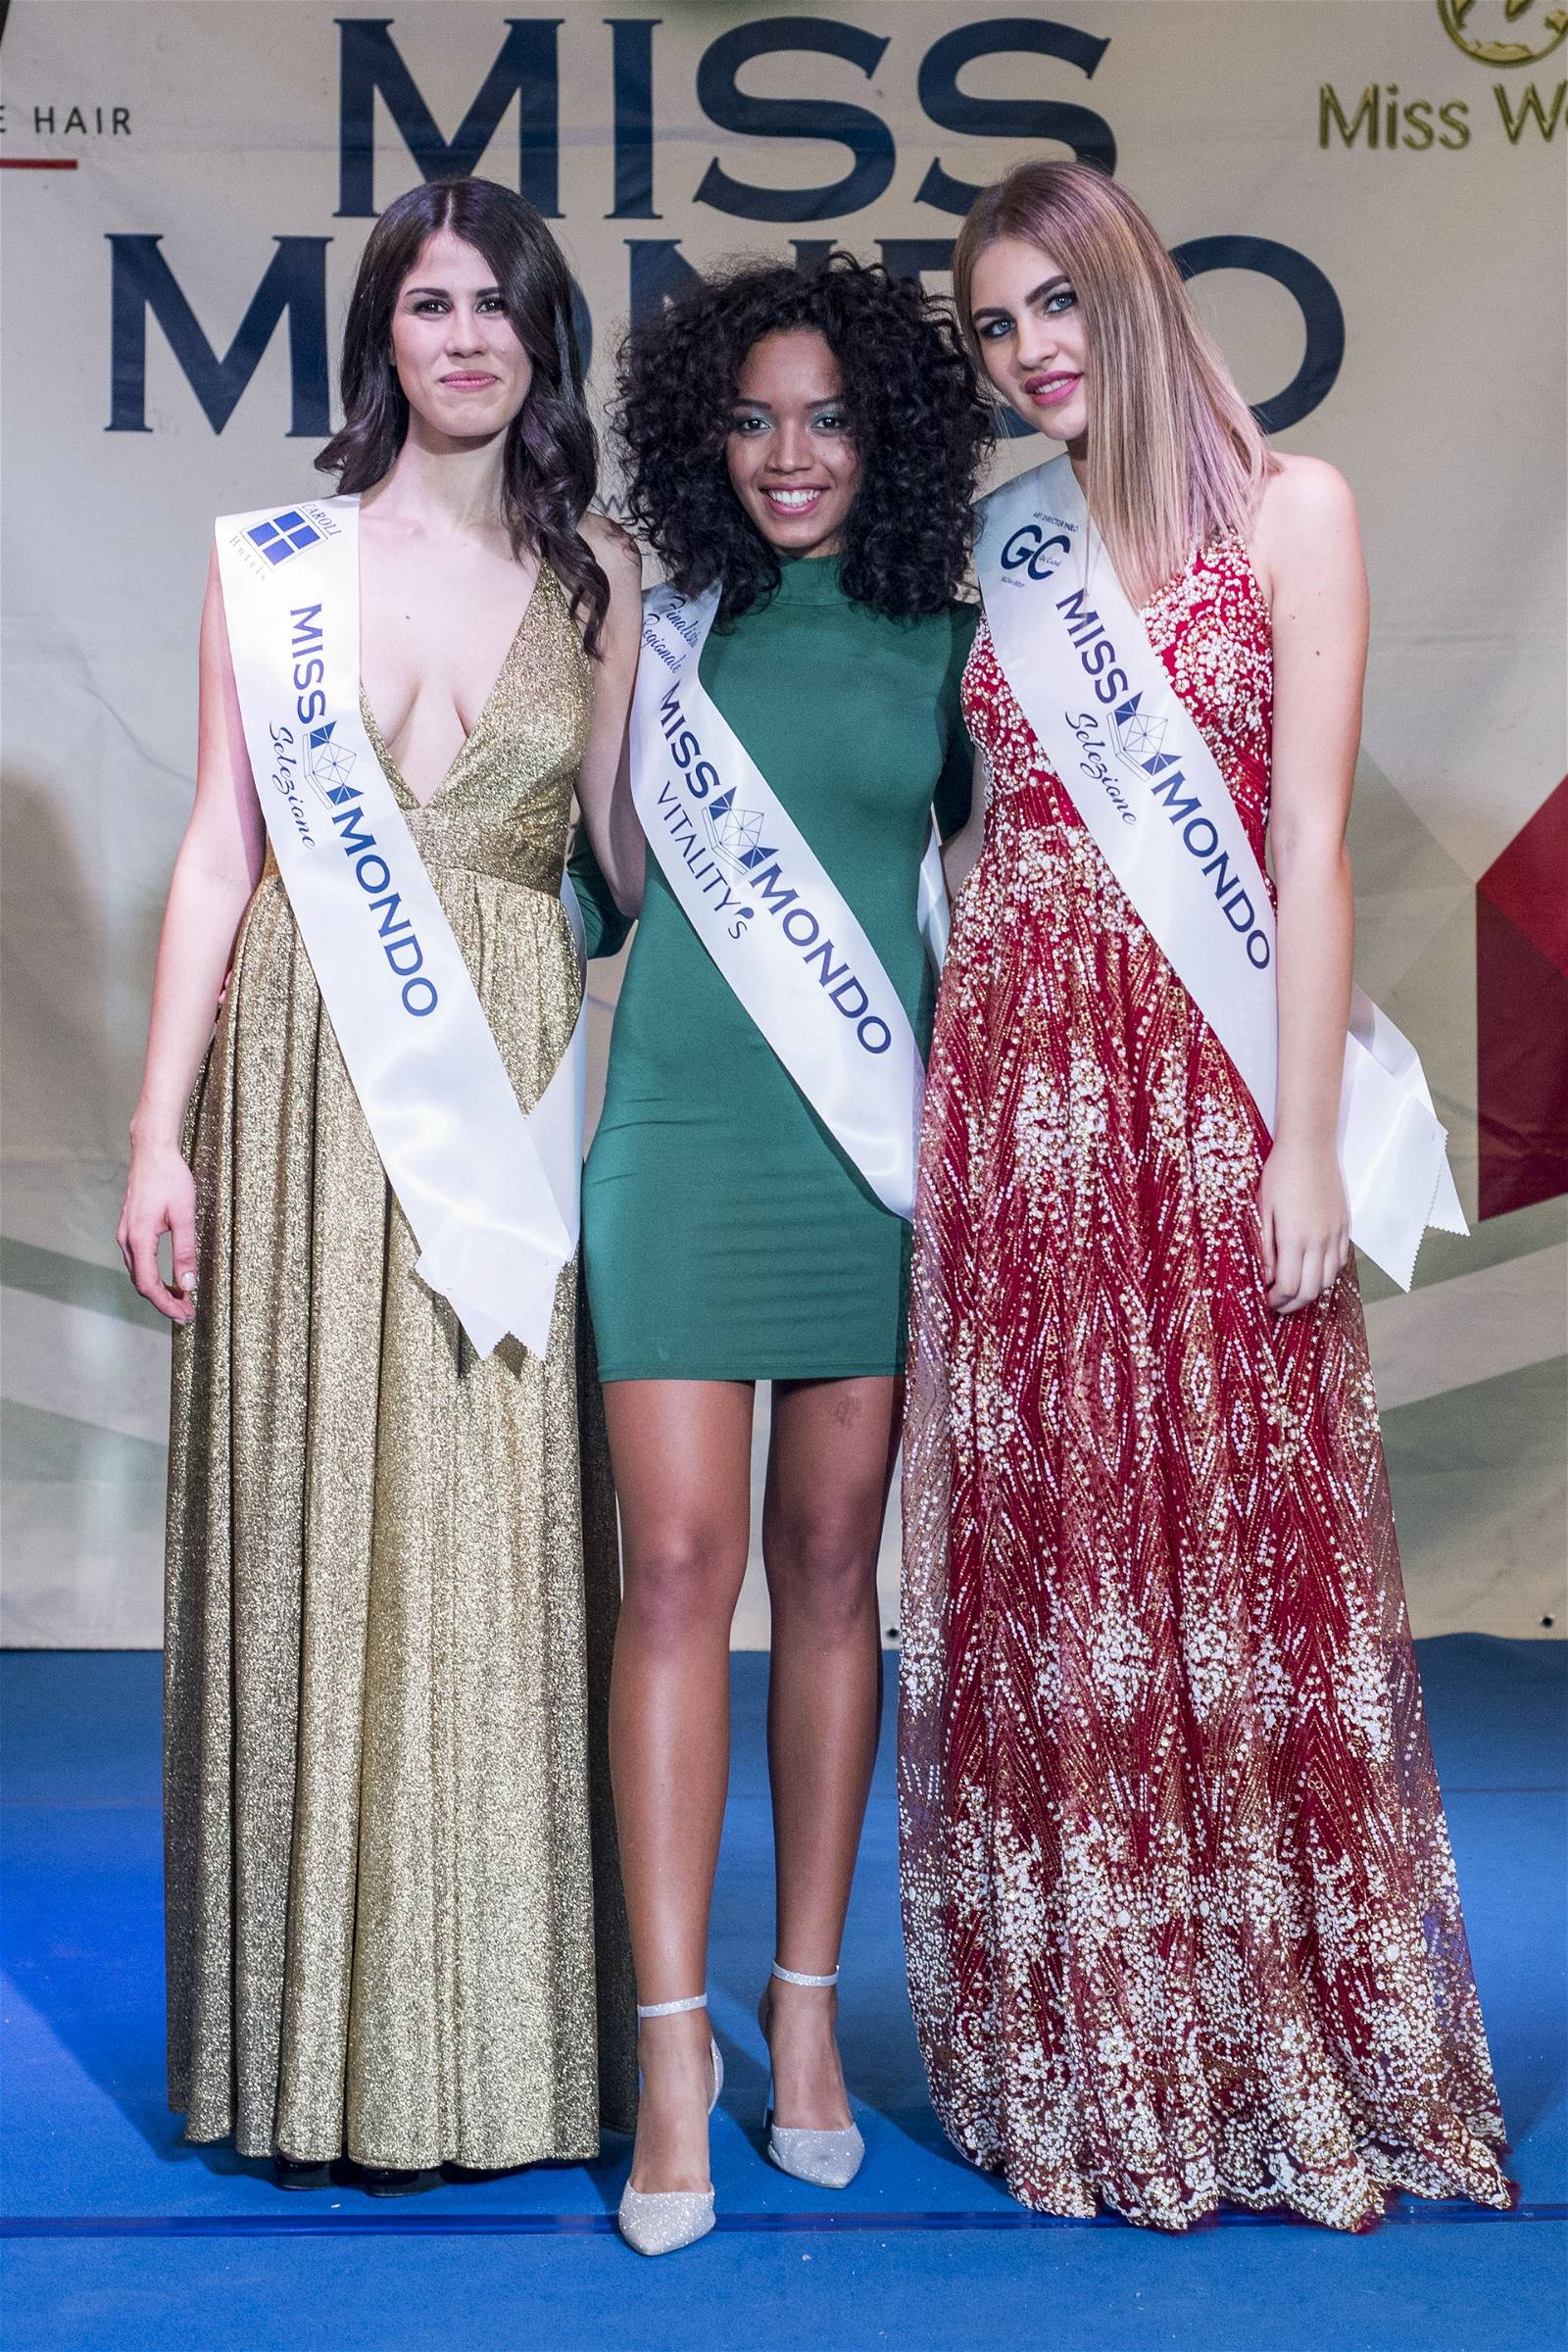 Miss Mondo Umbria, la spoletina Eva Bettini vince la seconda selezione